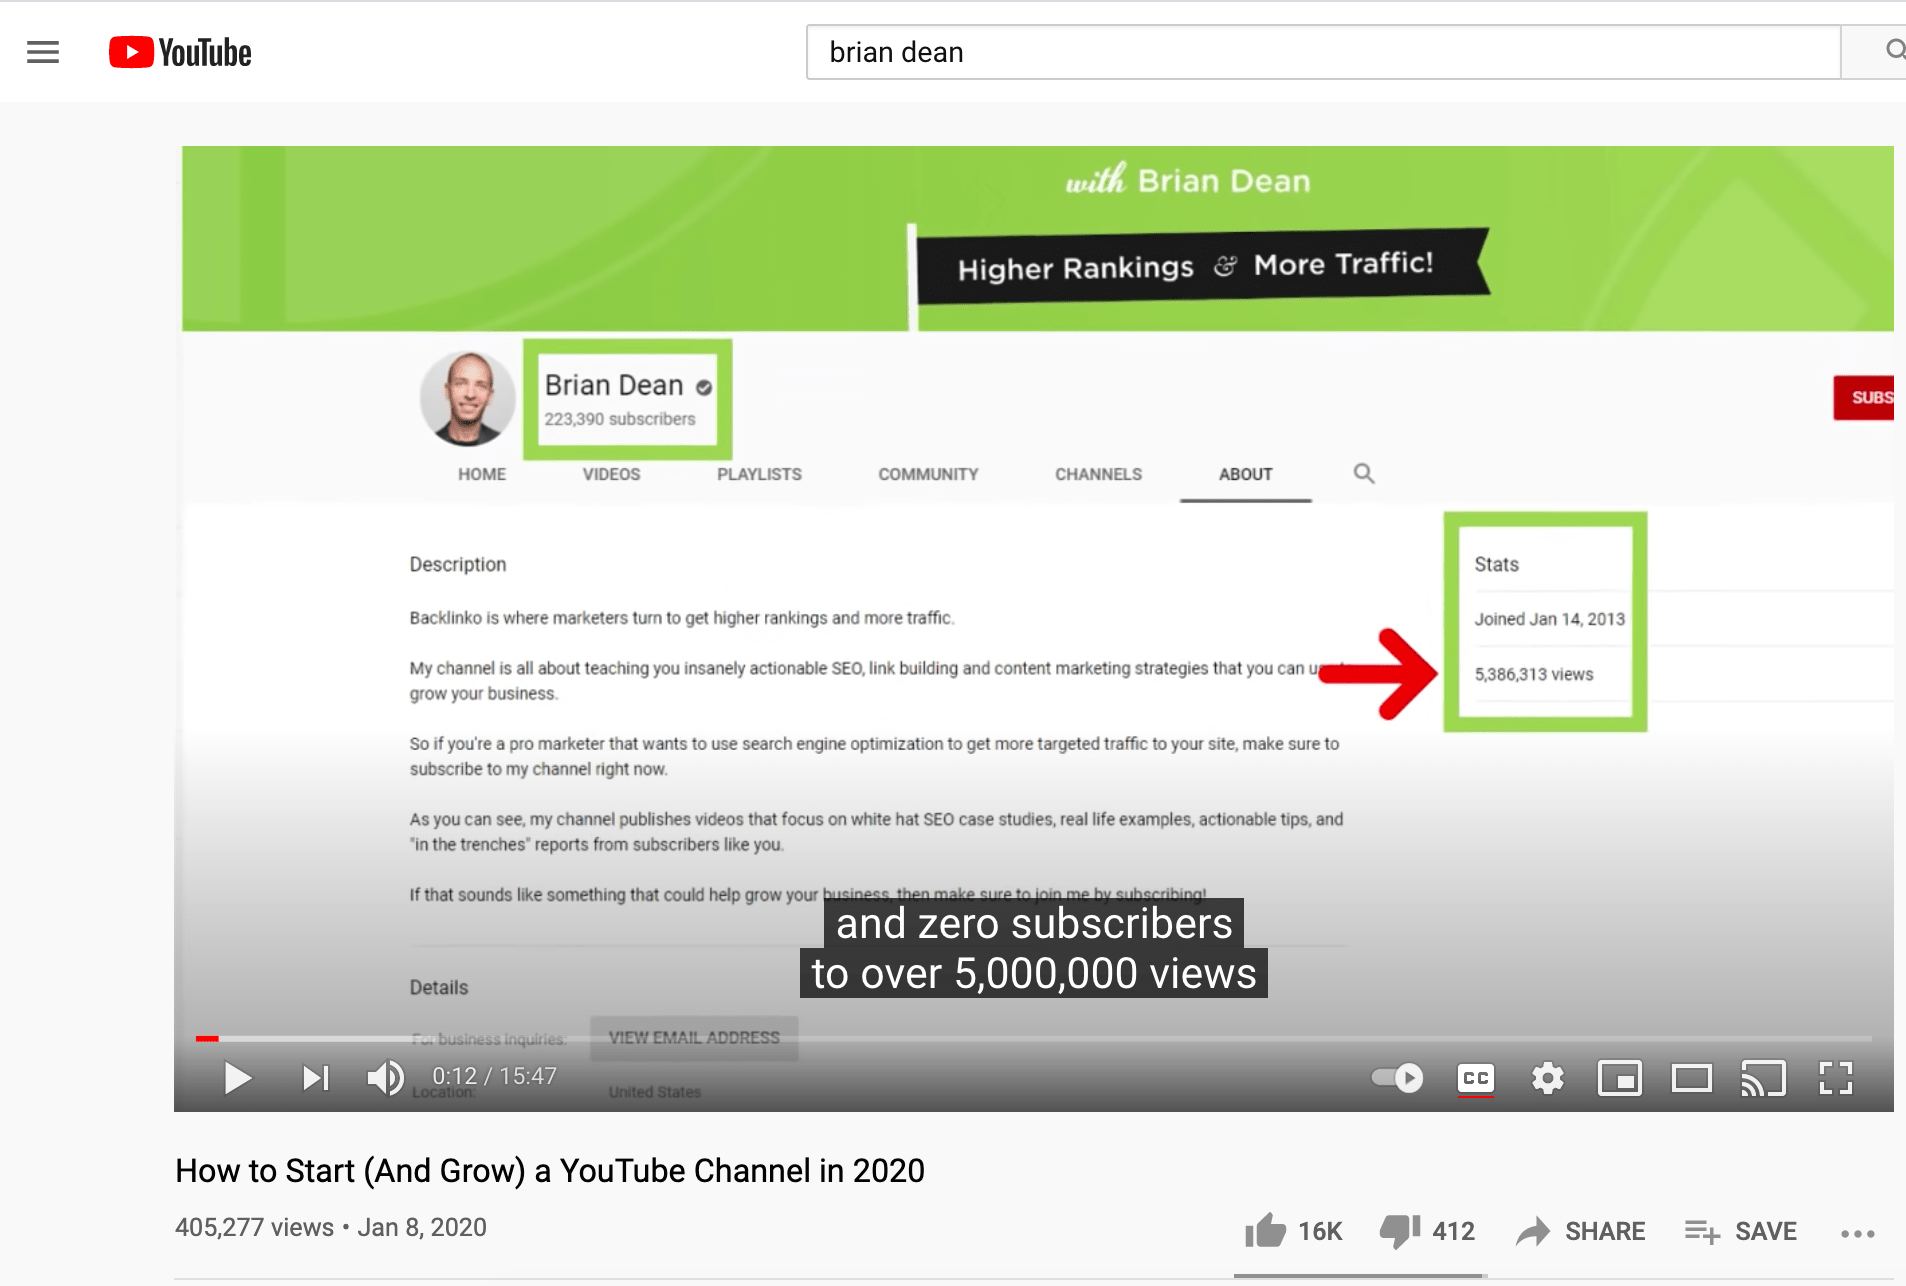 Brian Dean's video about growing a YouTube channel.